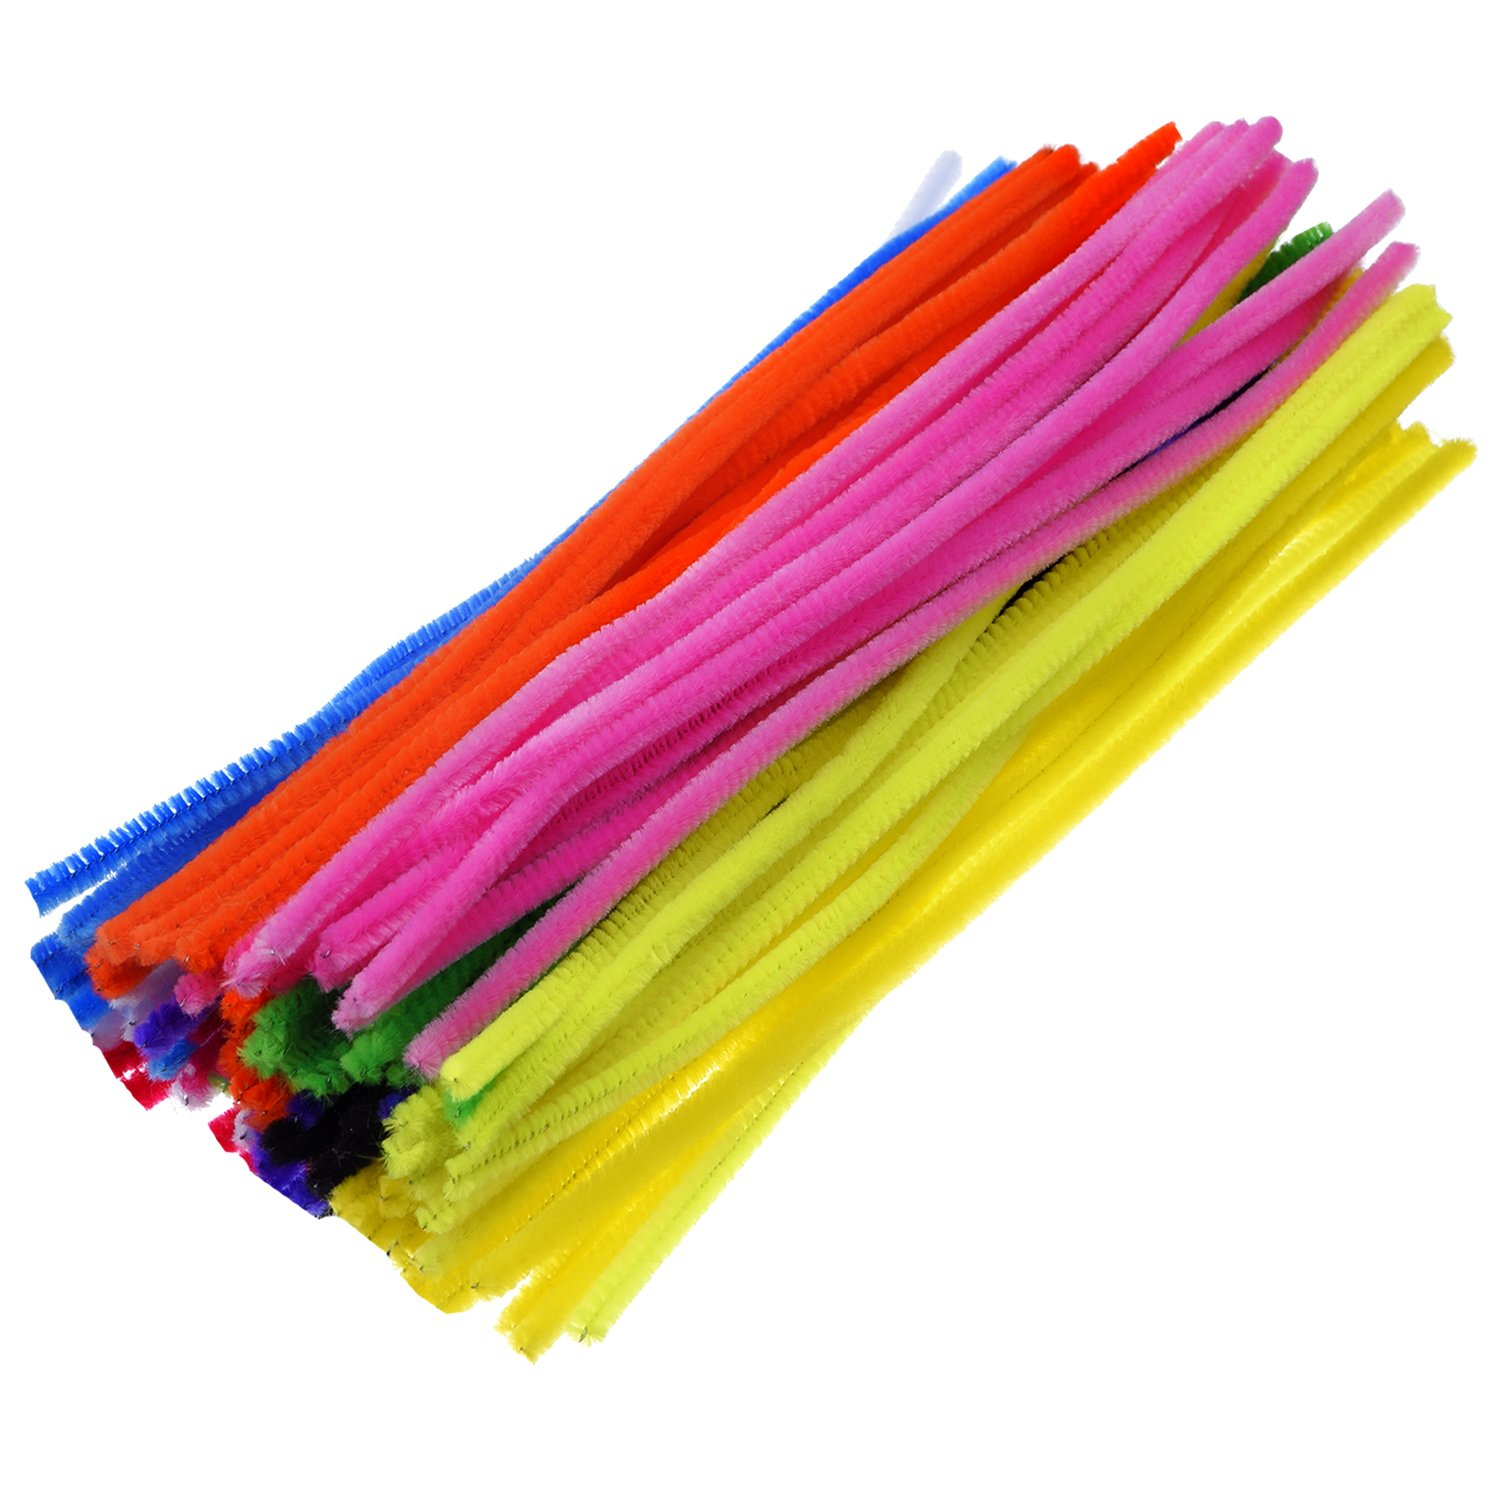 Amazon.com: eBoot 100 Pieces Pipe Cleaners Chenille Stem for Arts ...